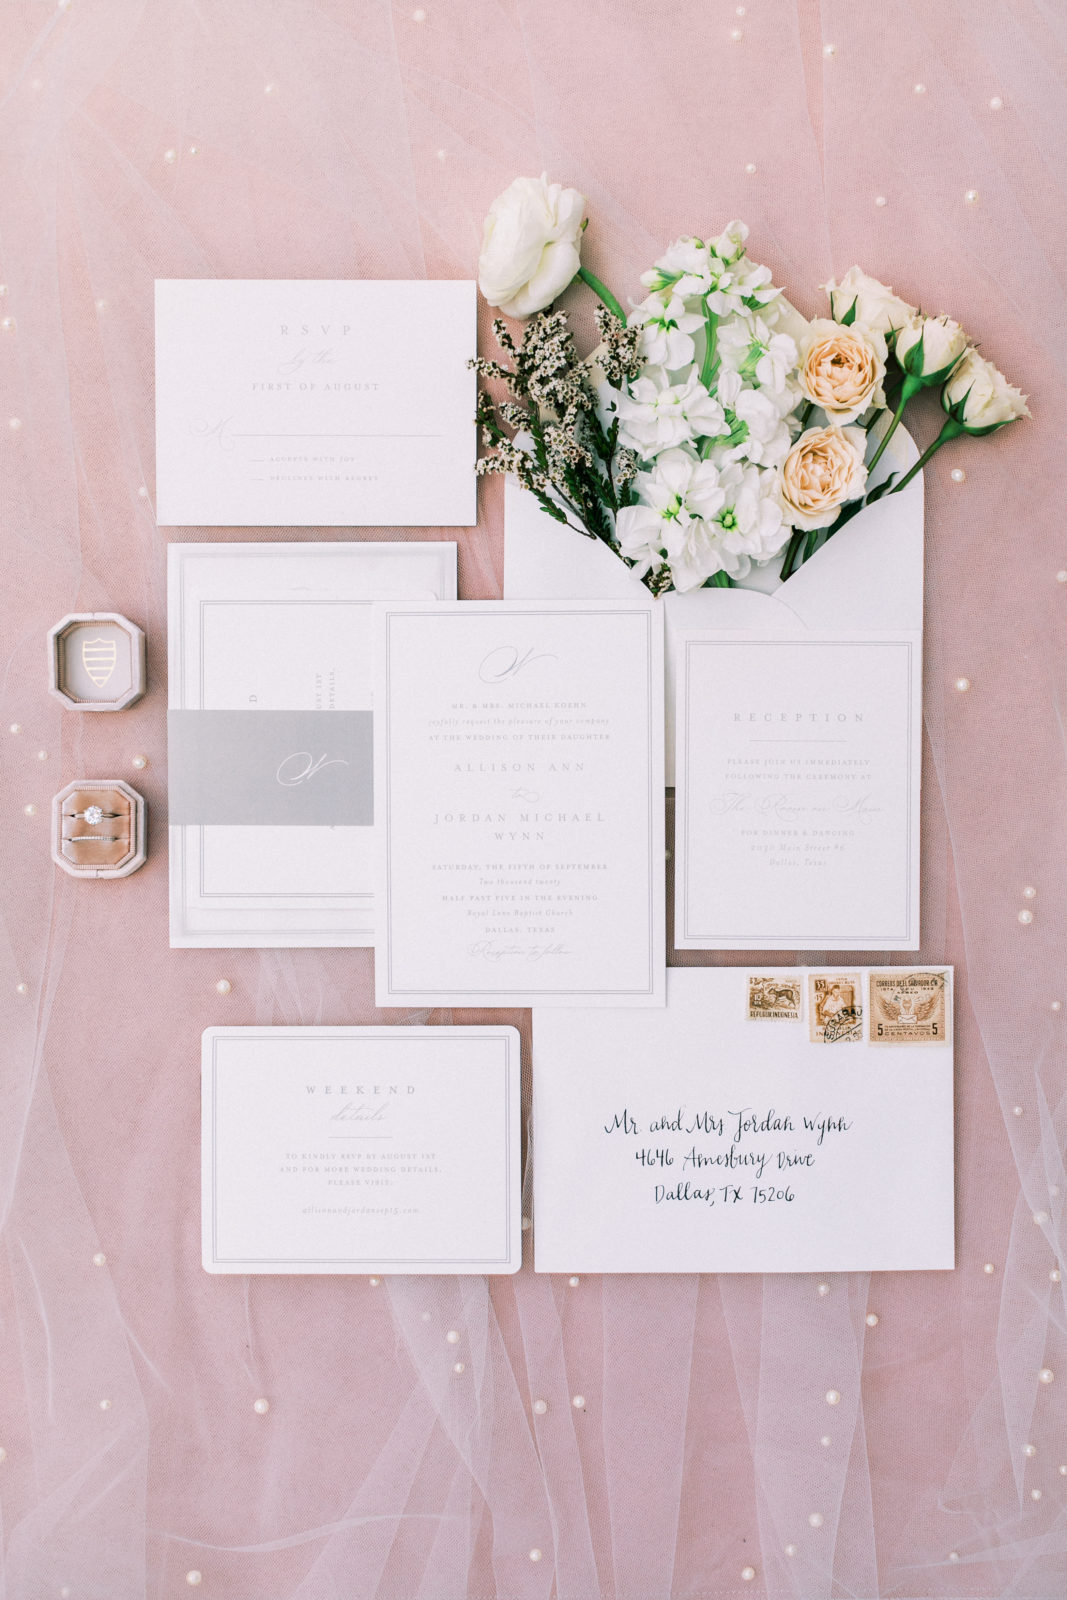 Classic white and black wedding invitation flatlay on pink backdrop